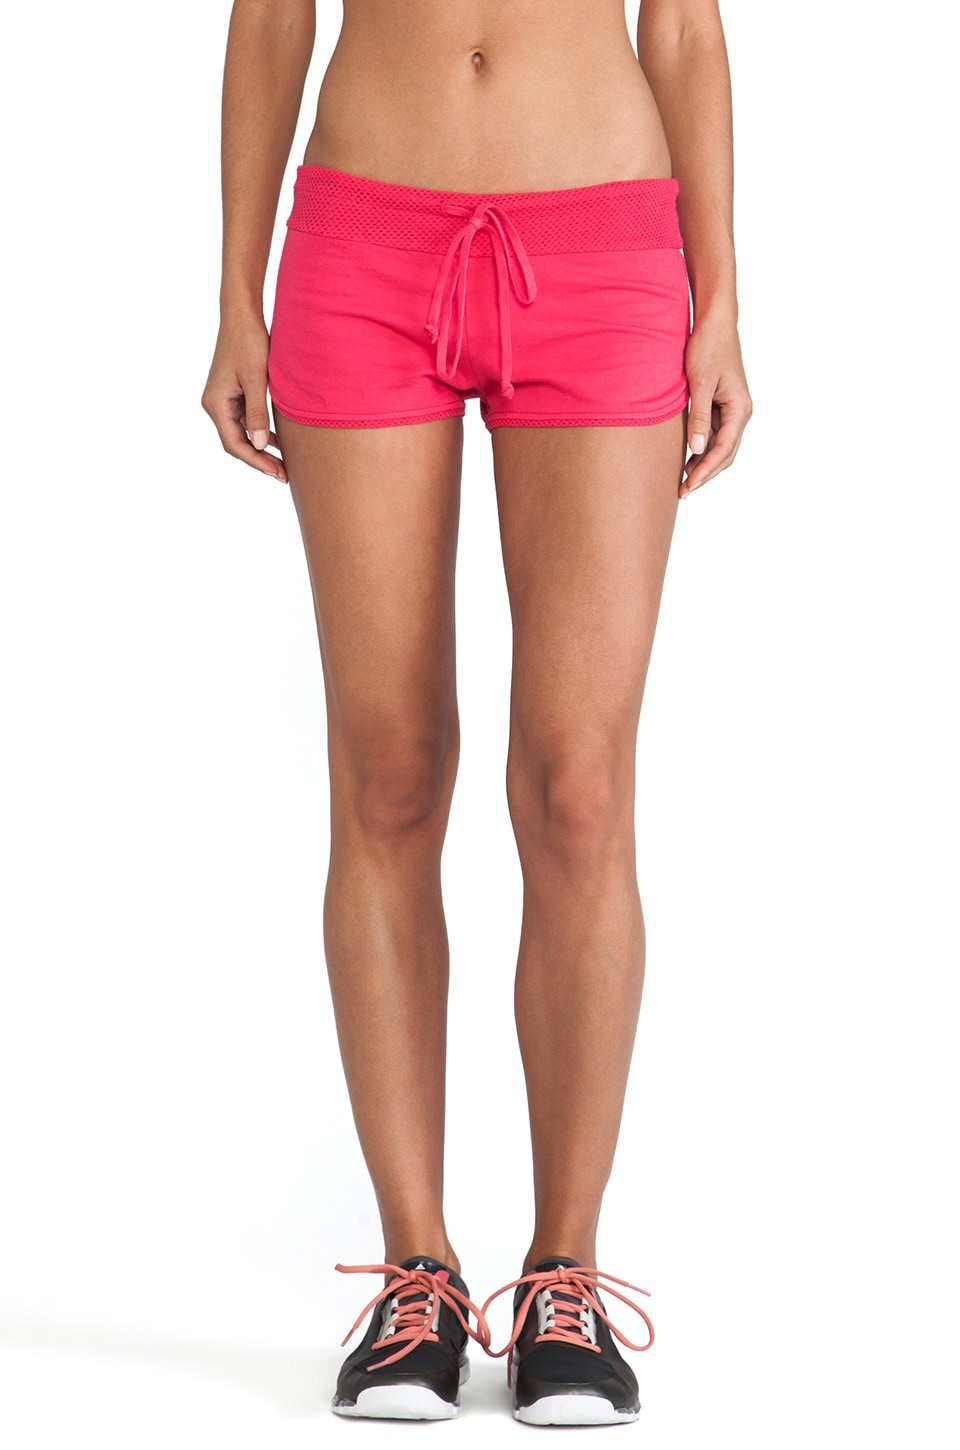 SOLOW Booty Short in Pomegranate